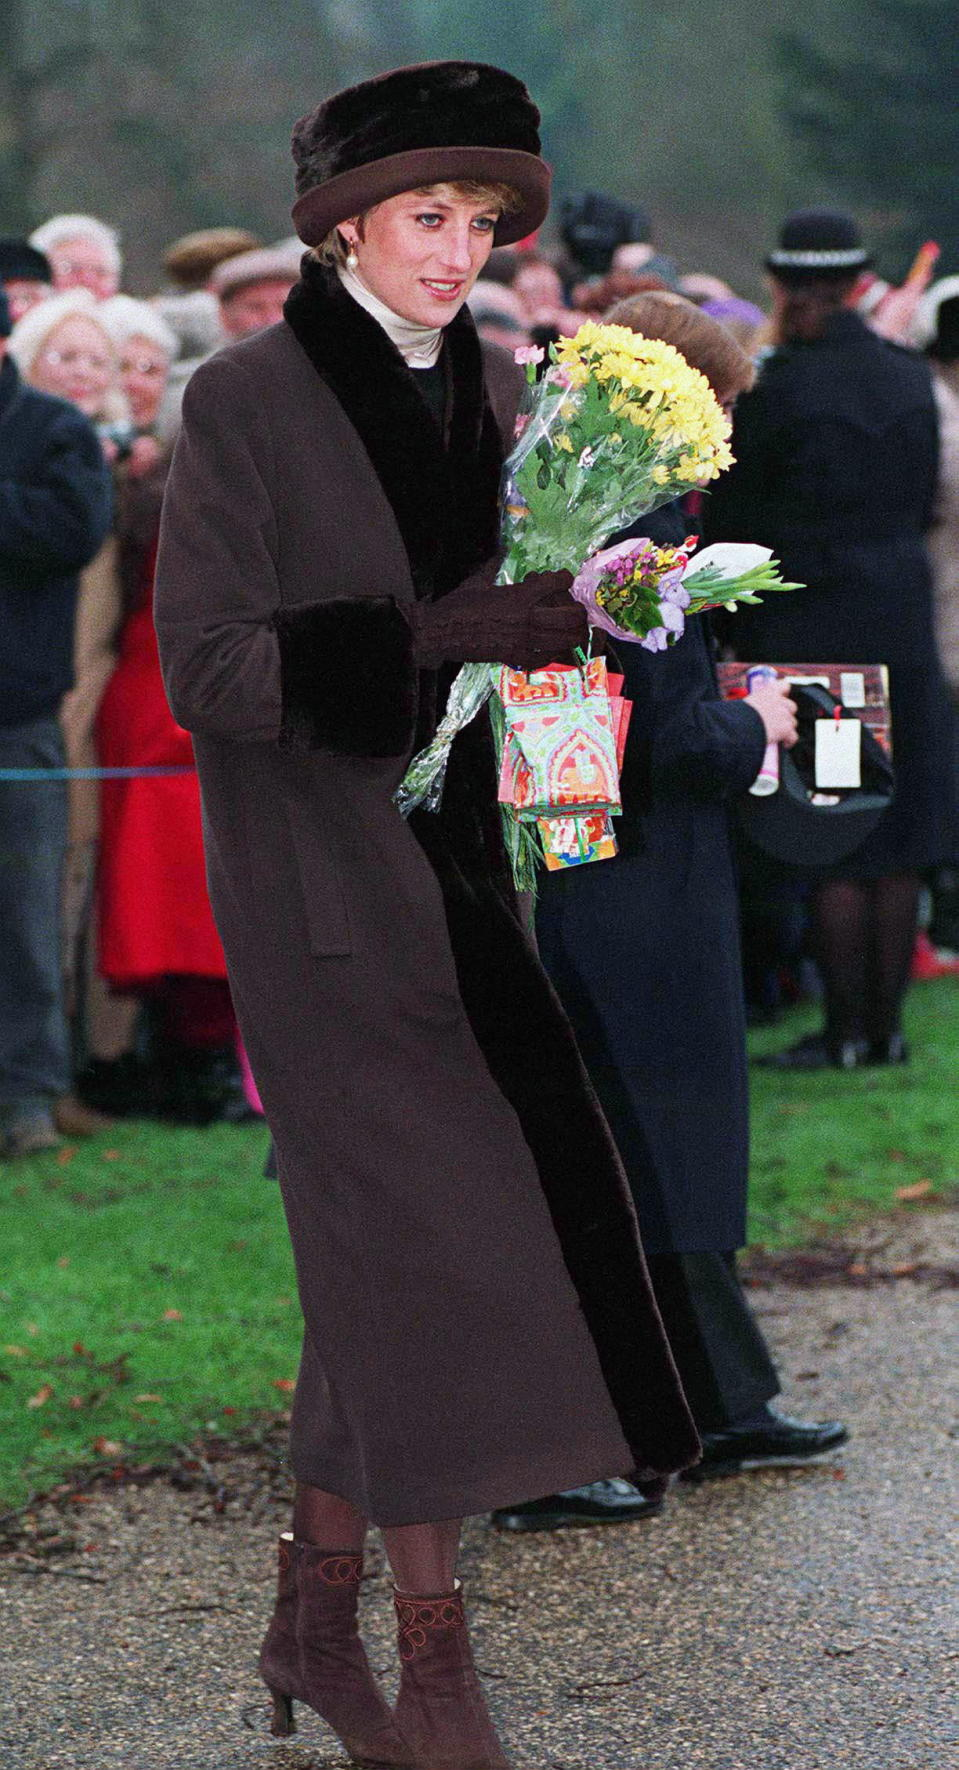 The Princess of Wales greeted members of the public in 1994 wearing a brown, fur-lined coat and matching hat. Photo: Getty Images